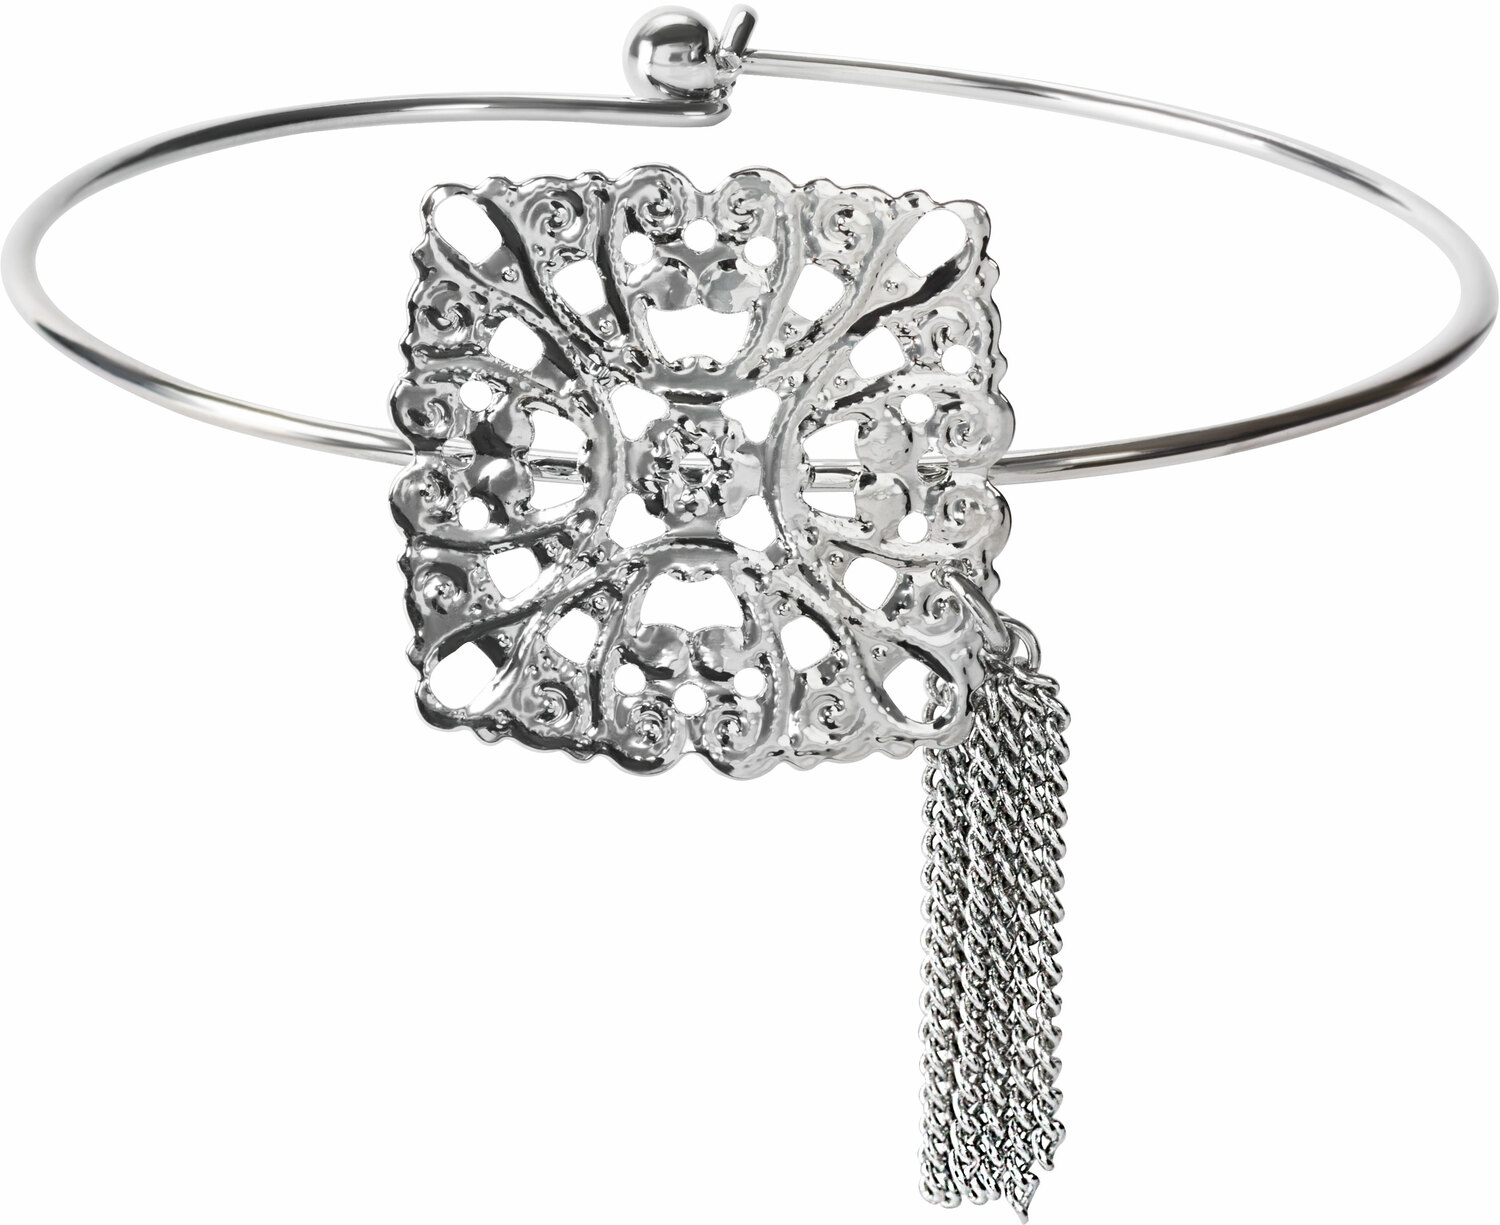 Silver Arabesque by H2Z Filigree Jewelry - Silver Arabesque - Filigree Bangle Bracelet